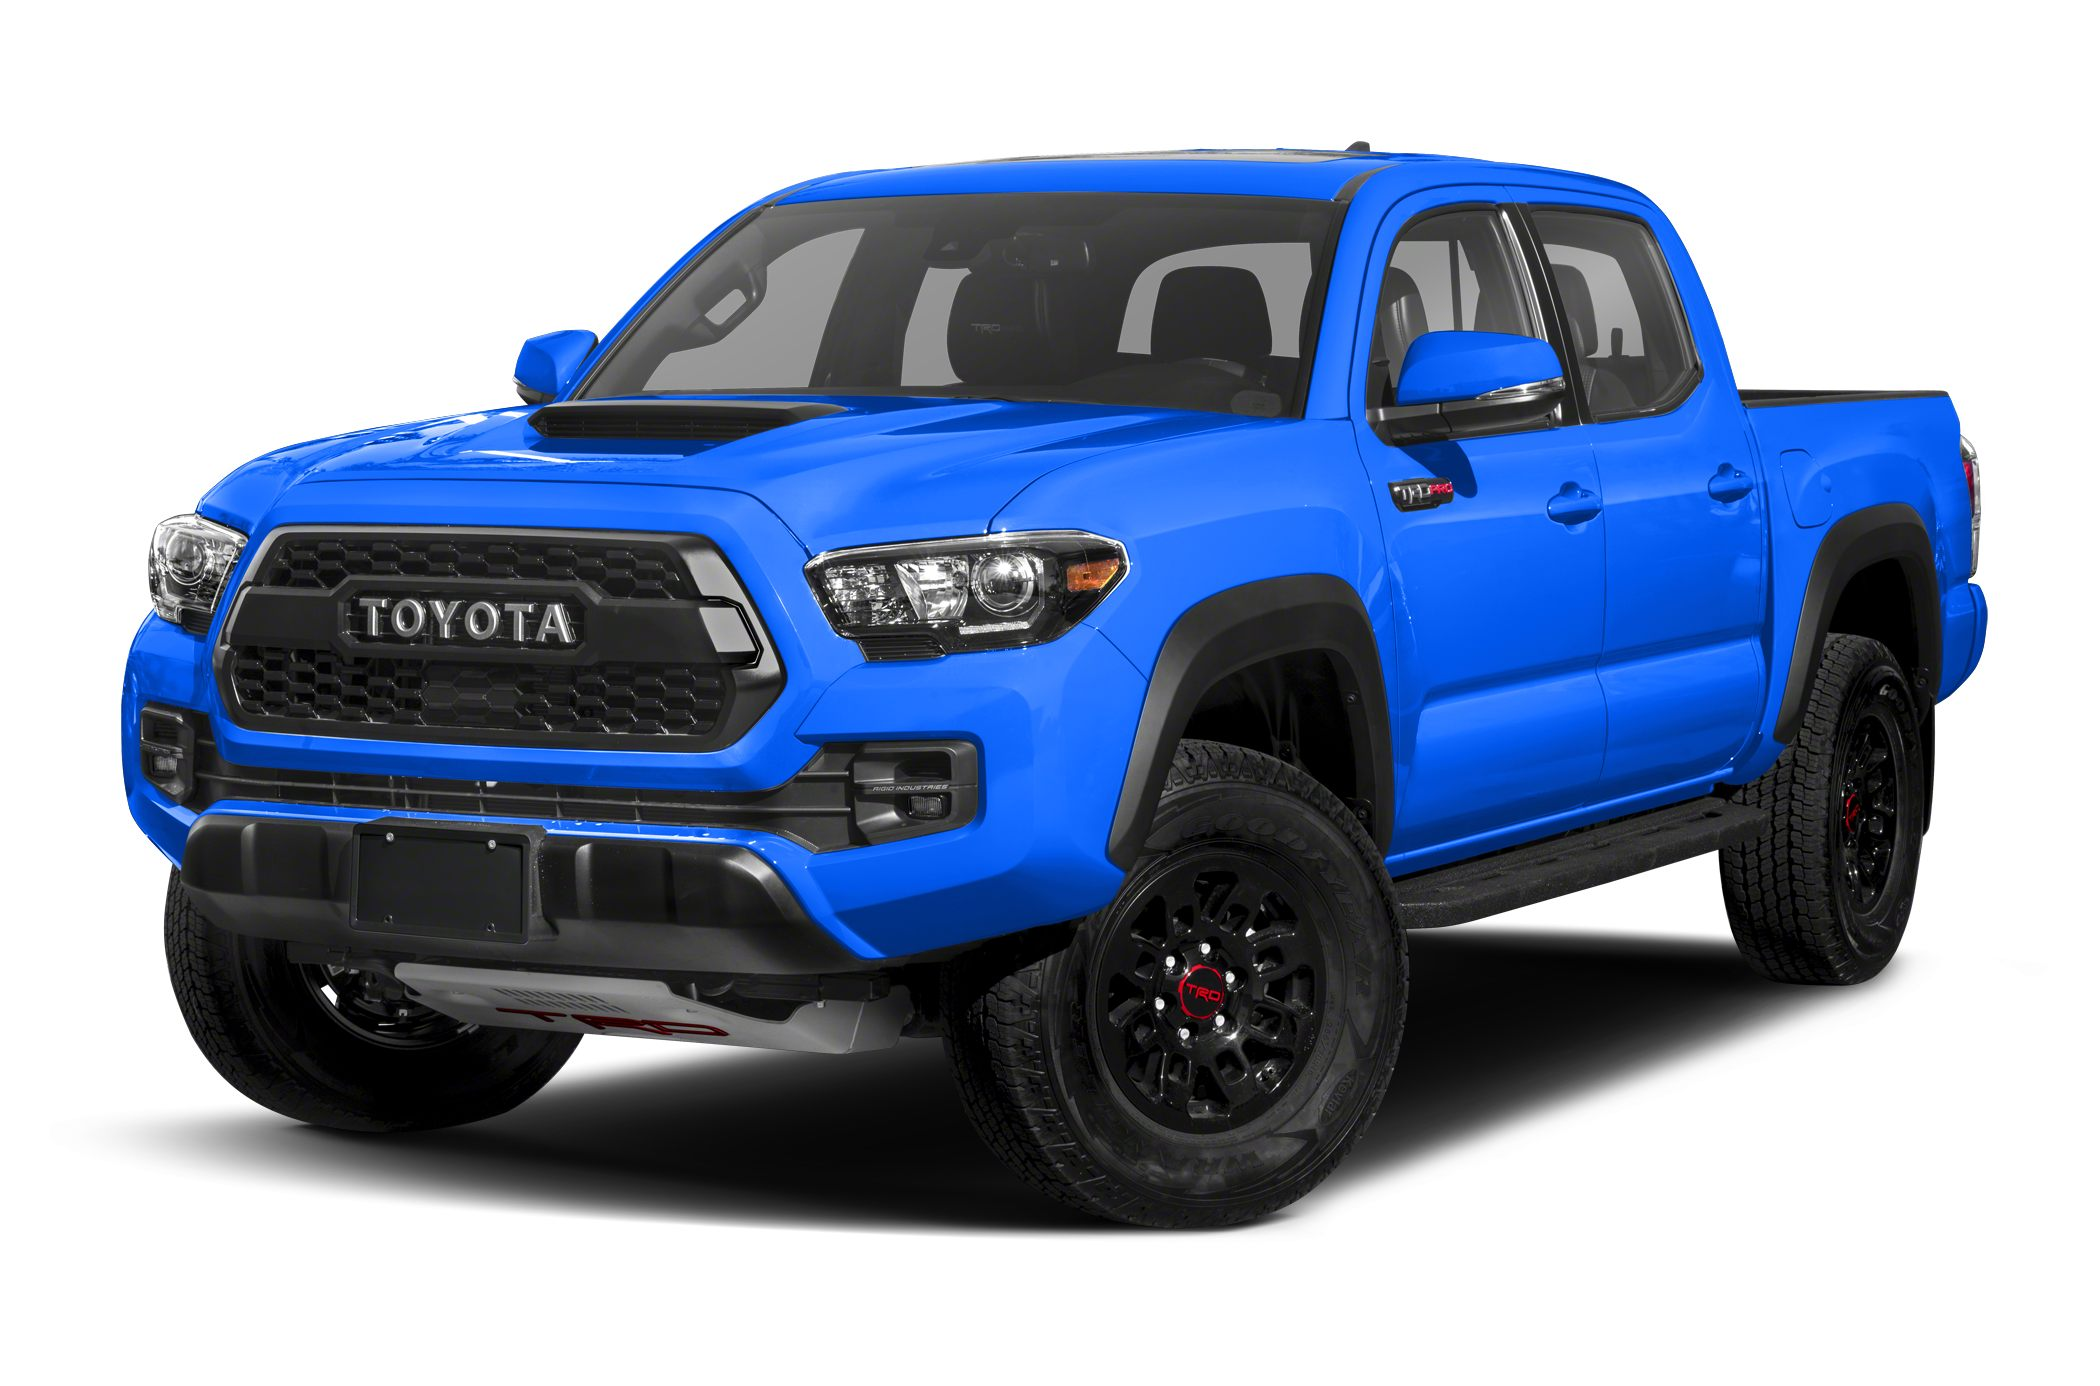 2019 Toyota Tacoma TRD Pro V6 4x4 Double Cab 127.4 in. WB